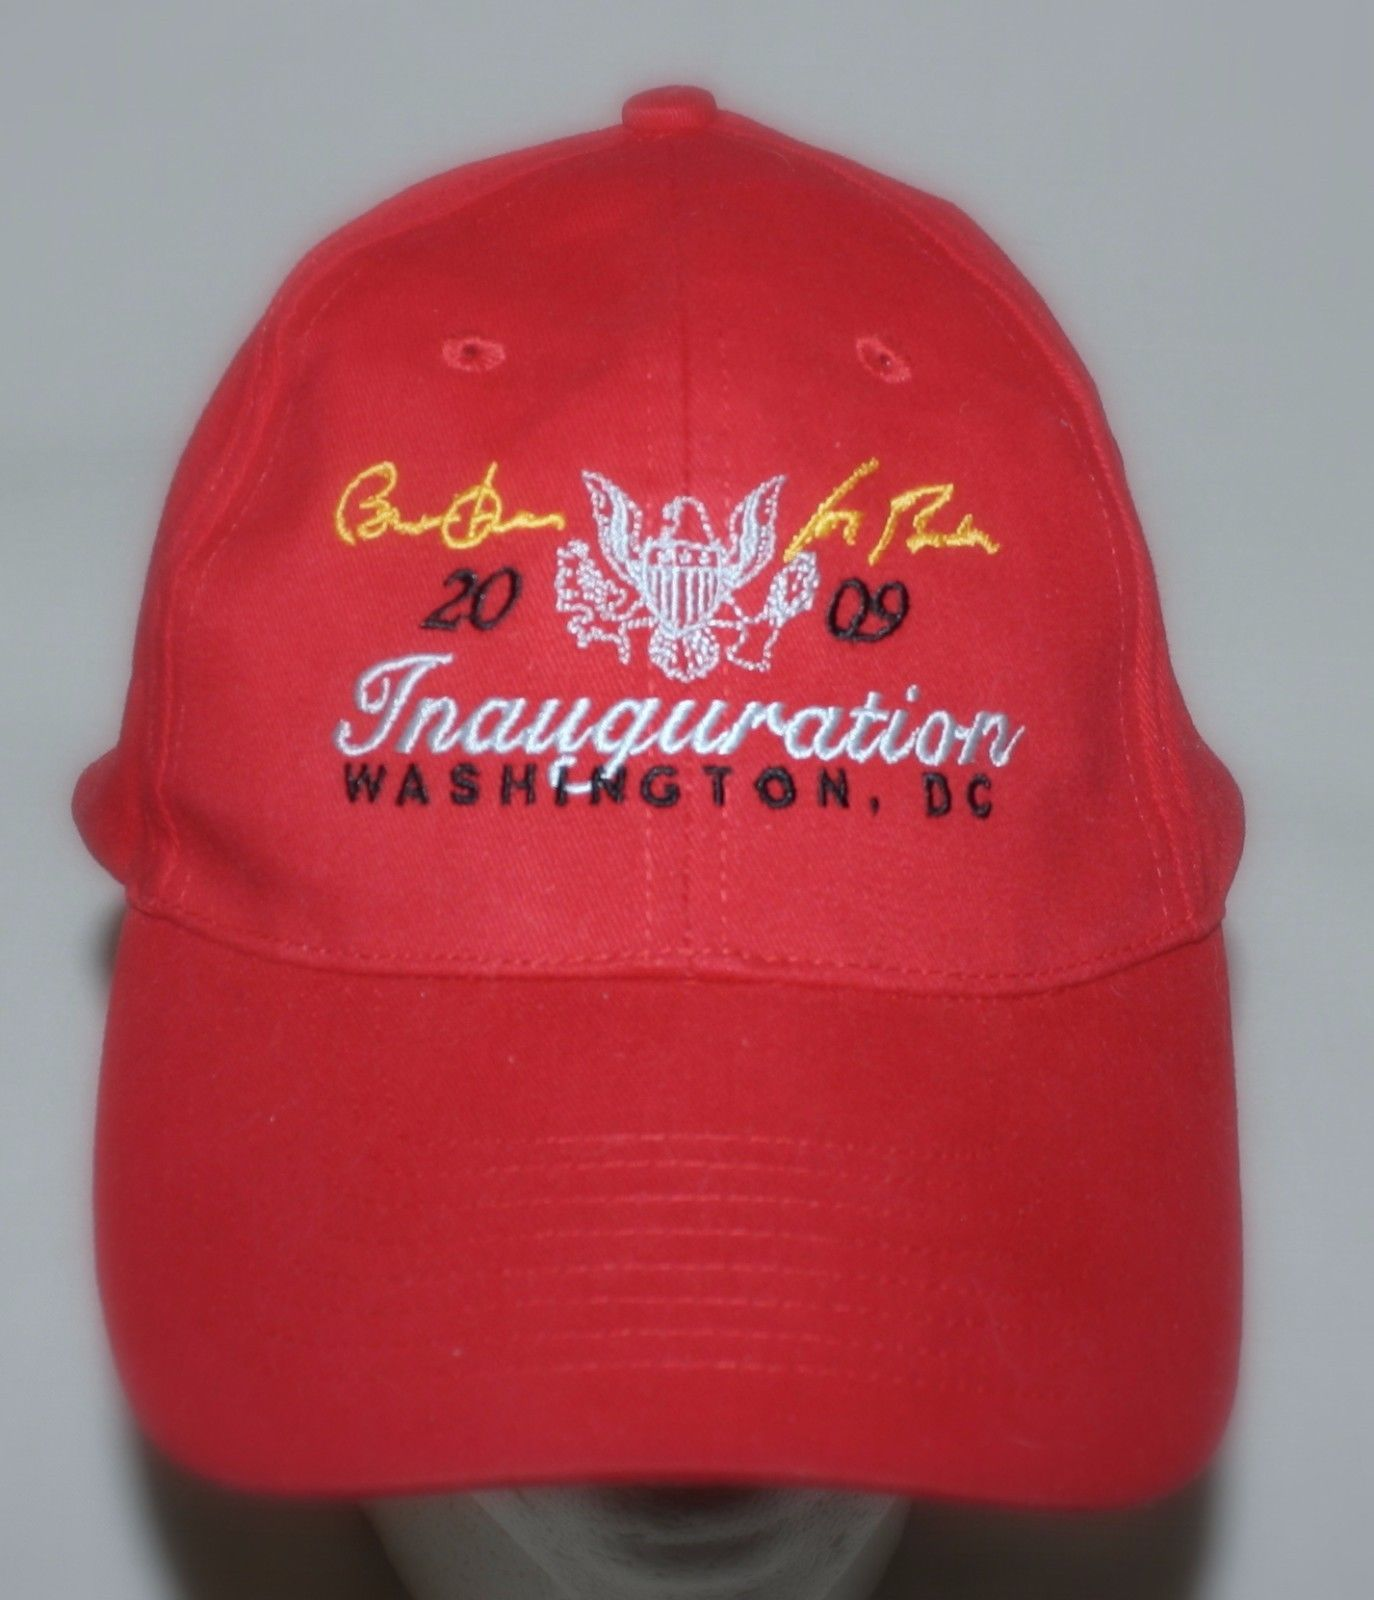 Primary image for 2009 Inauguration Hat President Obama Biden Washington DC Red Cap 1 Size Velcro